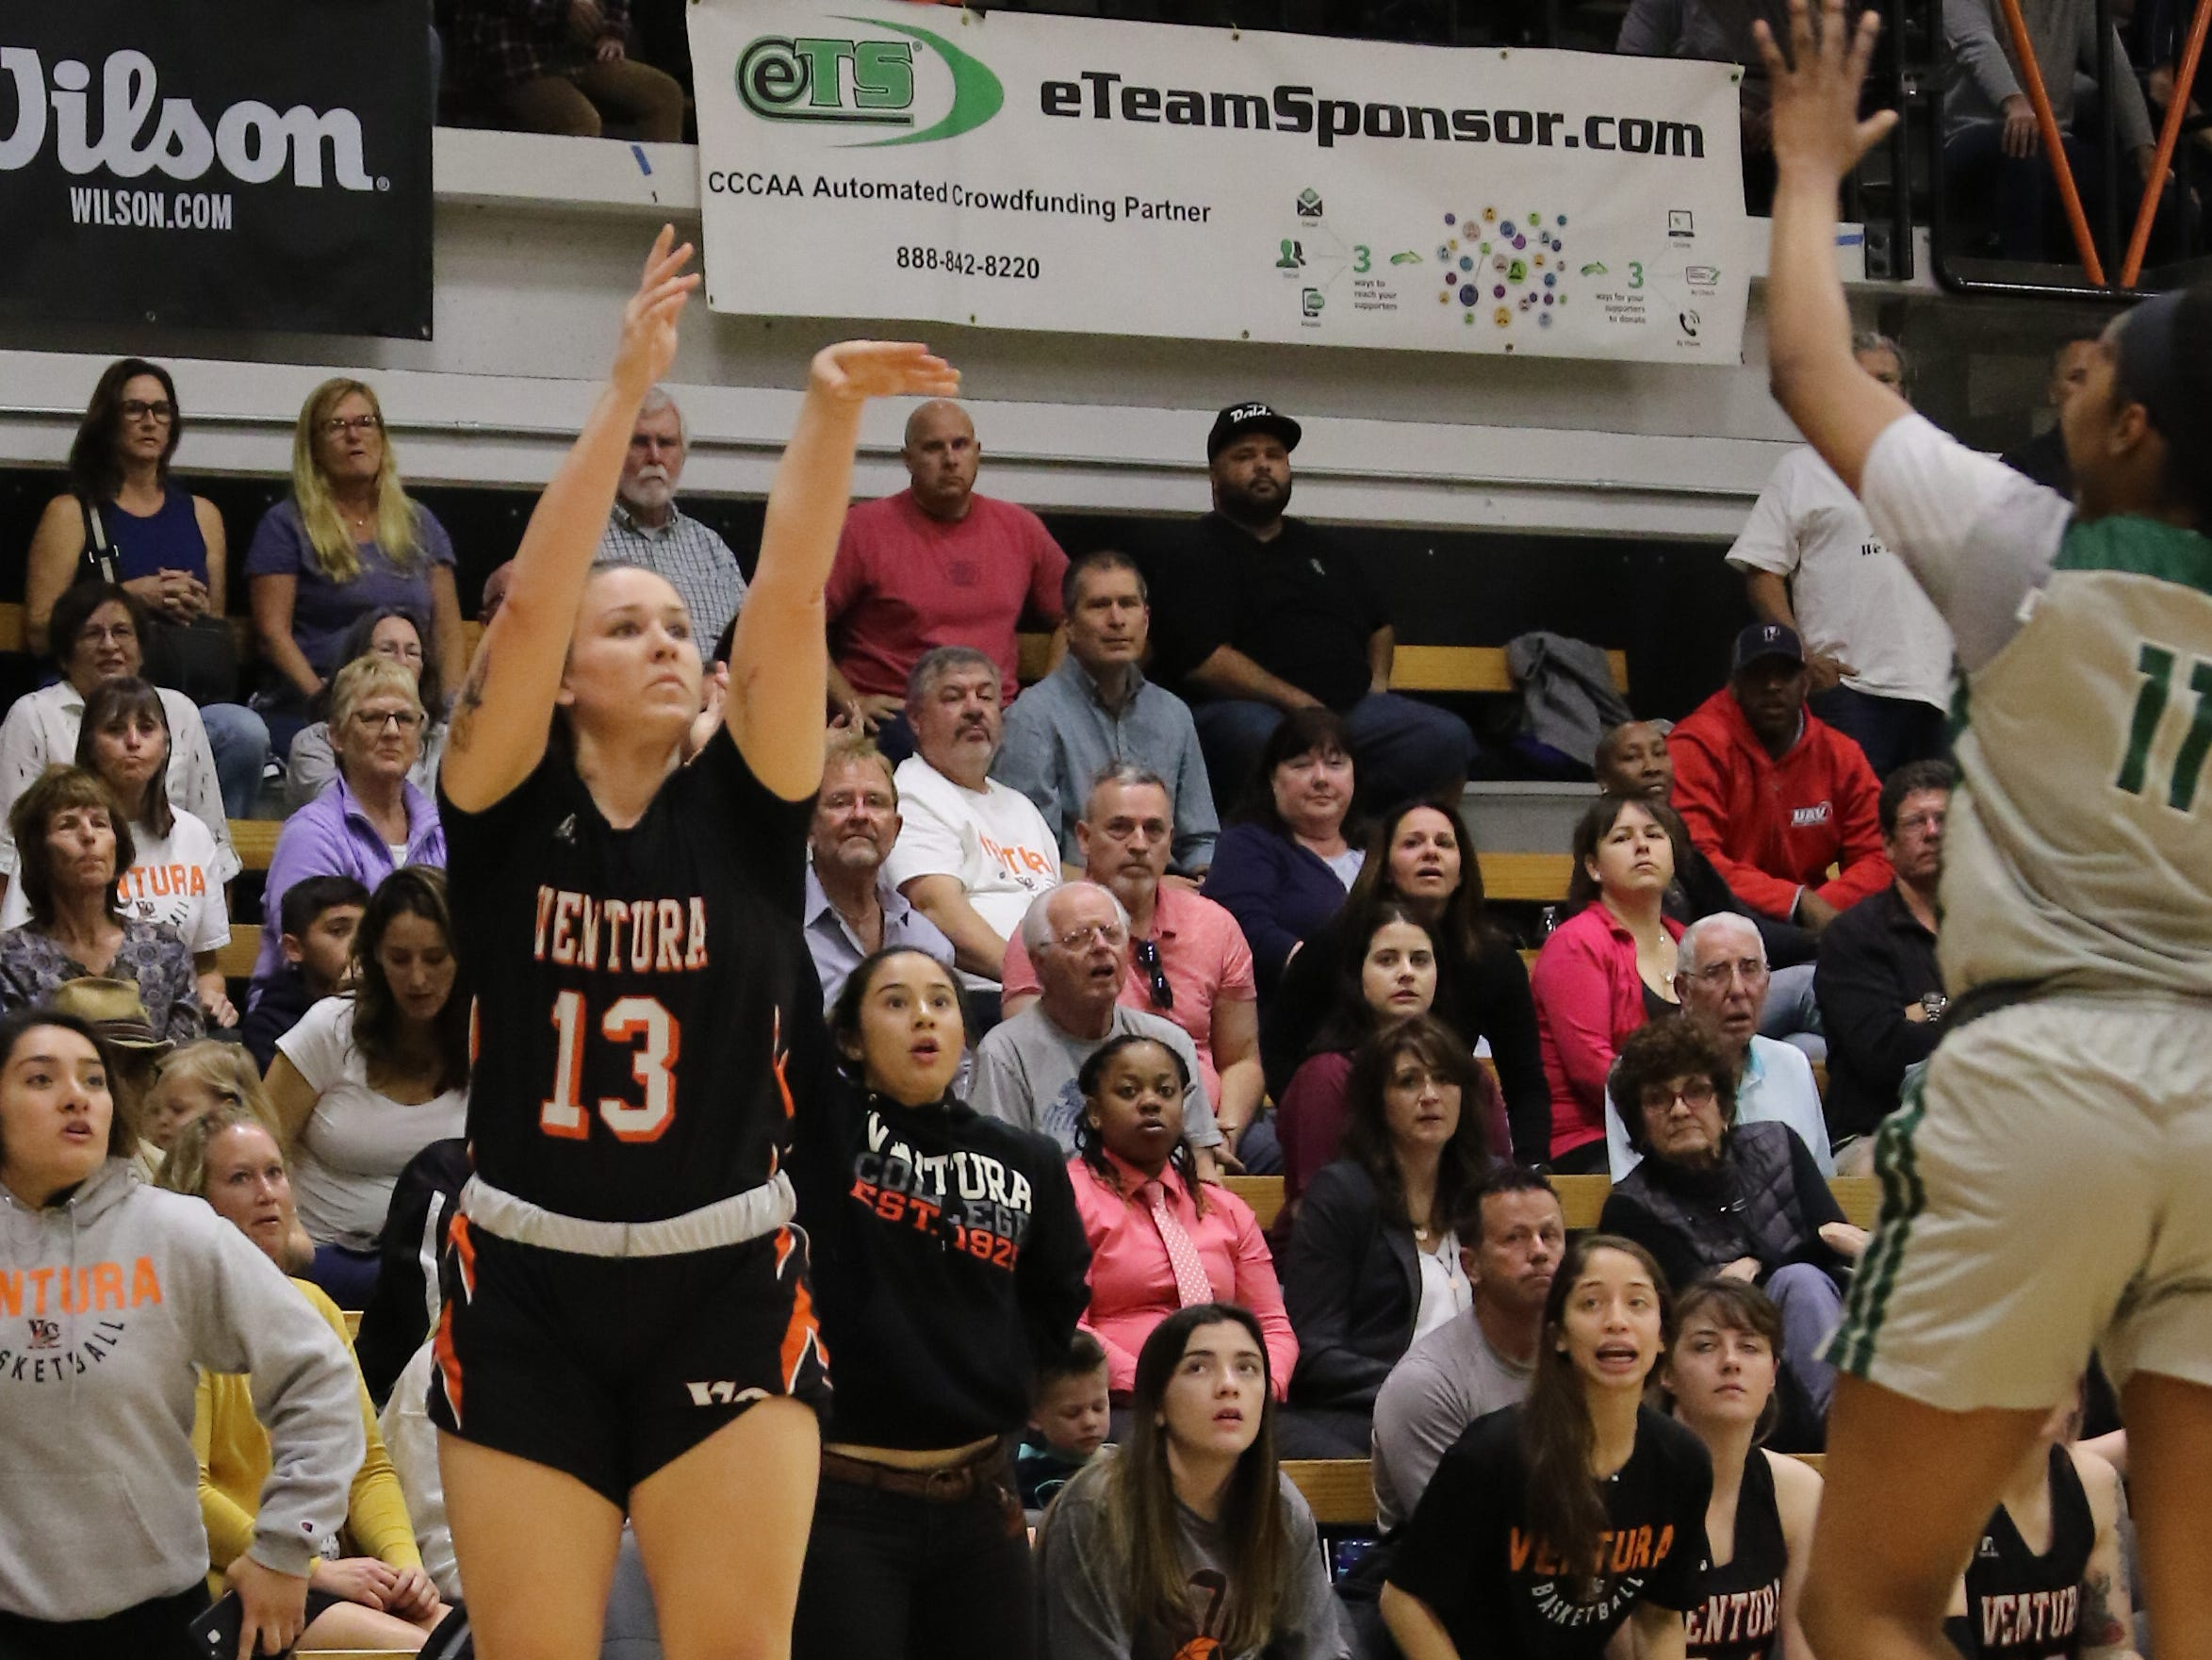 Ventura College freshman Emma Larson buries a corner 3-pointer in the second quarter of the CCCAA state quarterfinals against Diablo Valley on Friday night in Ventura. Diablo Valley won, 59-57.